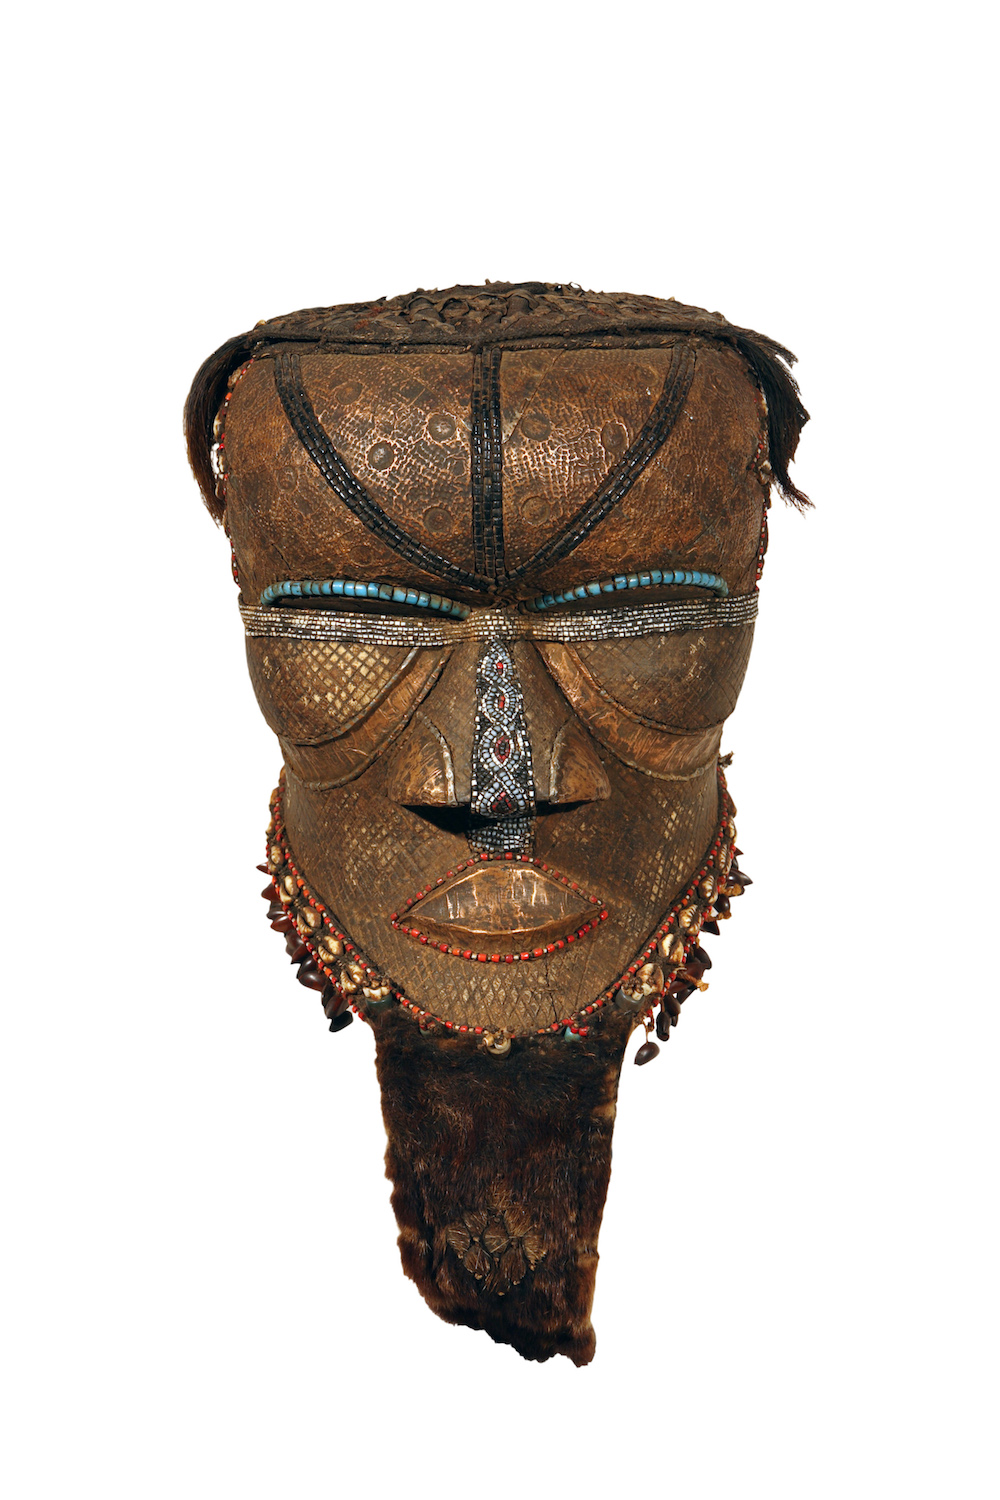 Democratic Republic of the Congo, Kuba peoples Helmet Mask (Bwoom), 19th-20th century Wood with sheet copper, cowrie shells, fur, beads, fabric, hair 17 3/4 x 11 1/4 x 18 3/4 in. Gift of Mr. and Mrs. Sol Levitt, HU96.56